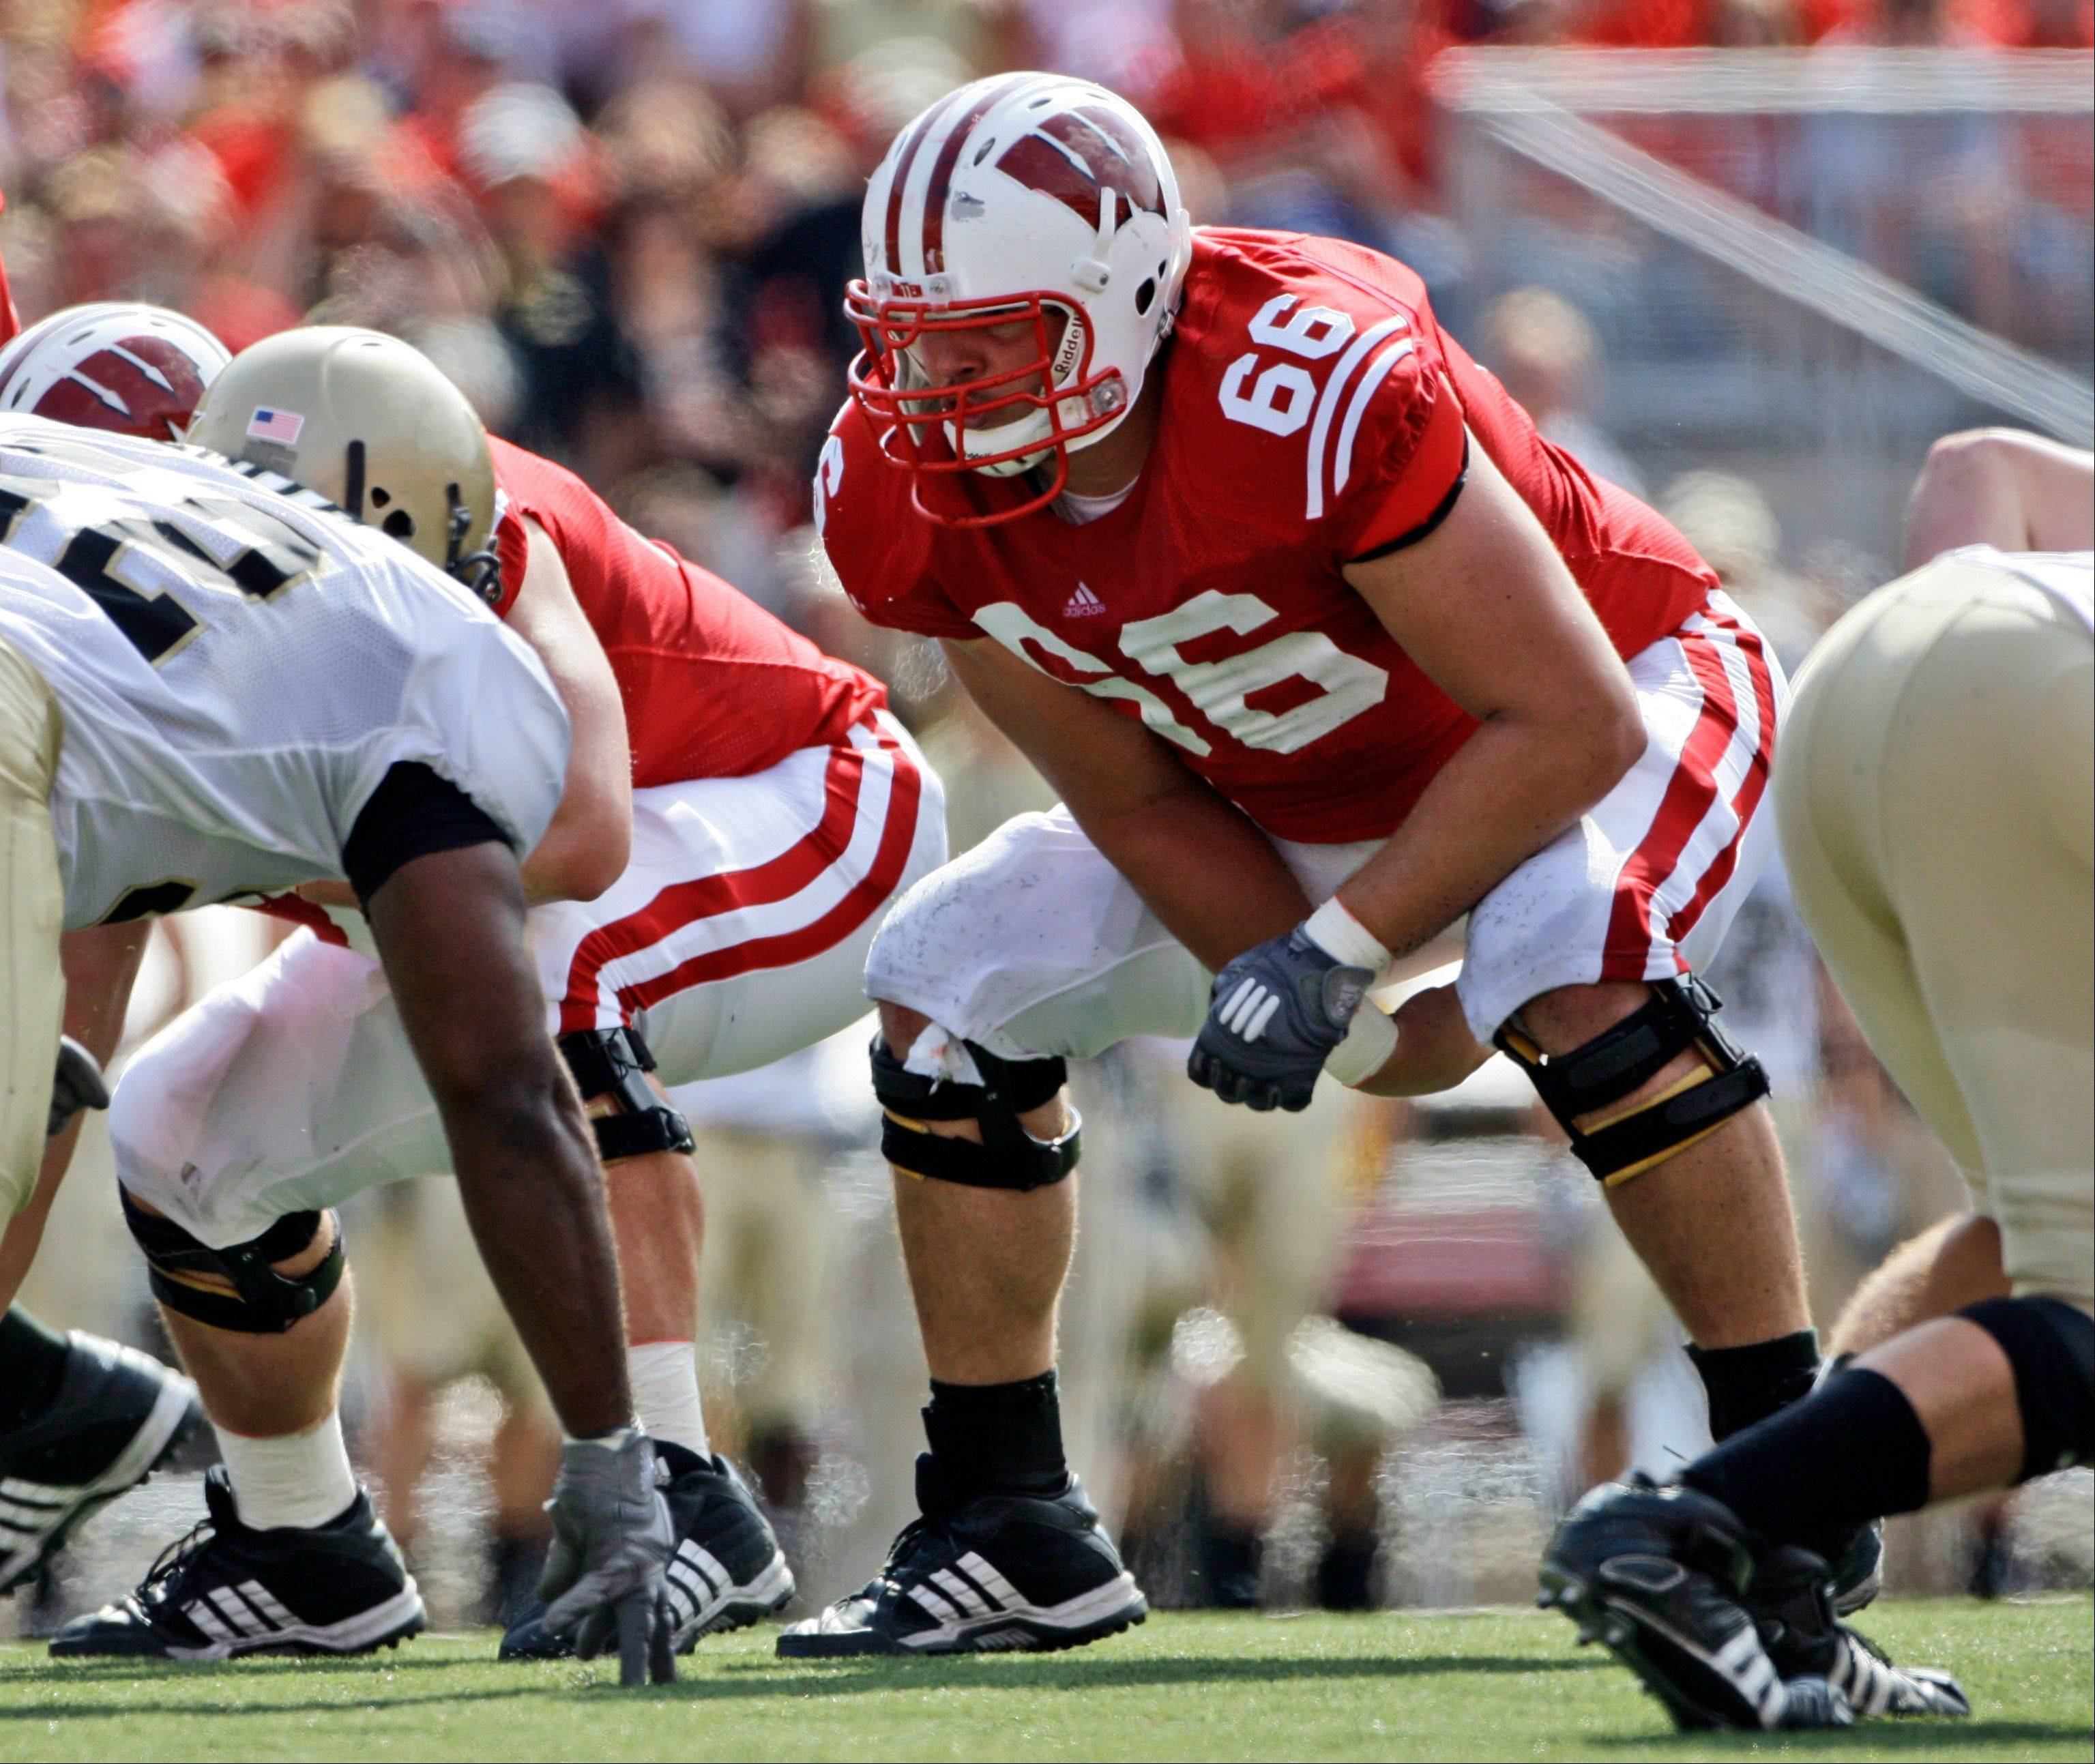 In this Sept. 19, 2009, file photo, Wisconsin's Peter Konz (66) lines up during the first half of an NCAA football game in Madison, Wis. Konz is a top prospect in the upcoming NFL football draft. The 6-foot-5, 314-pound Konz could be tabbed as early as the end of the first round.